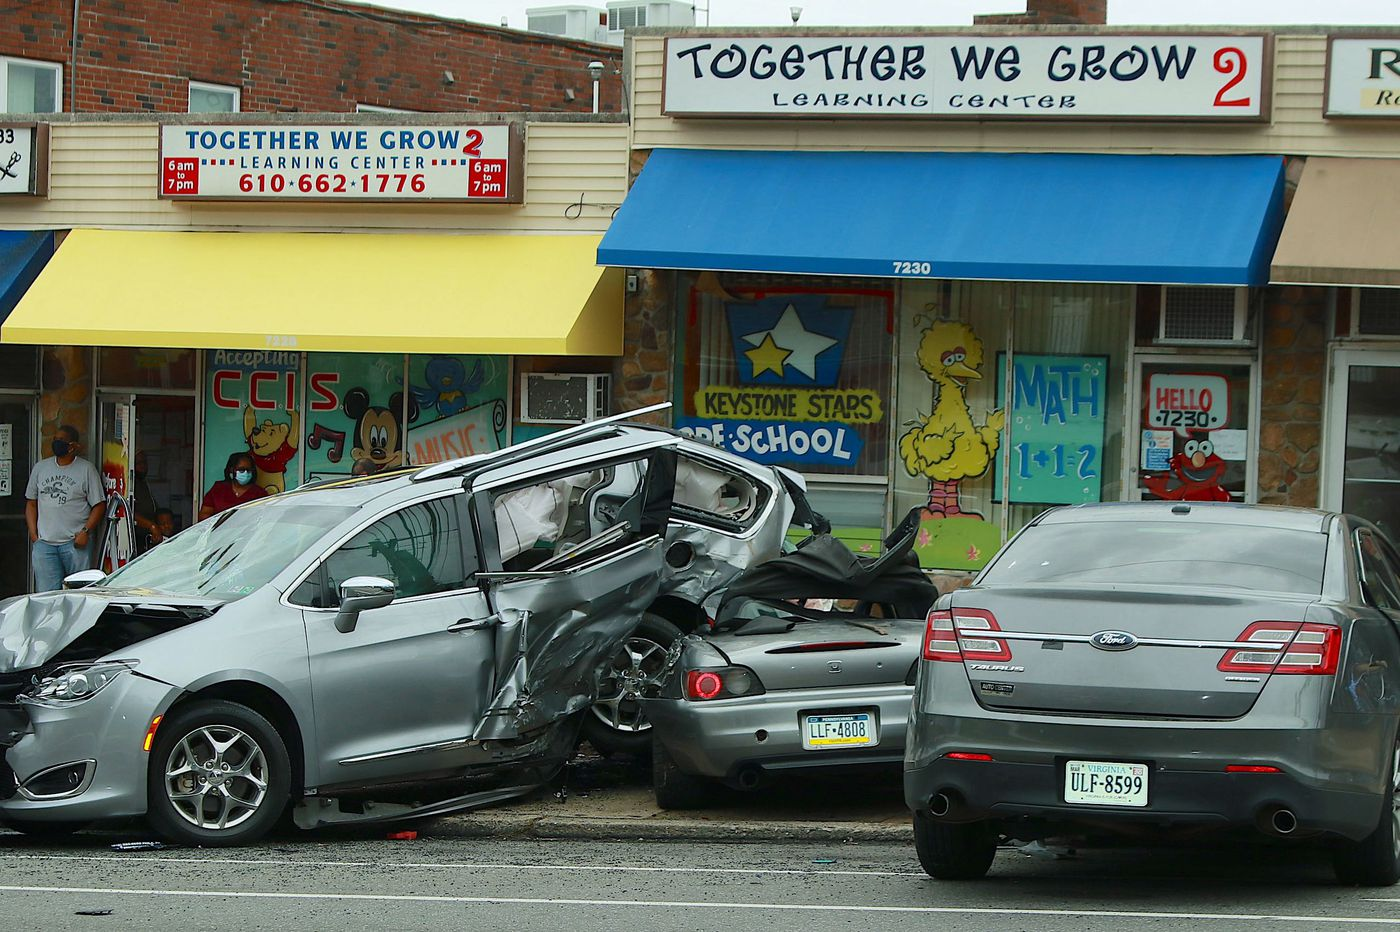 Man killed, 6 others injured in multi-vehicle crash in Overbrook Park